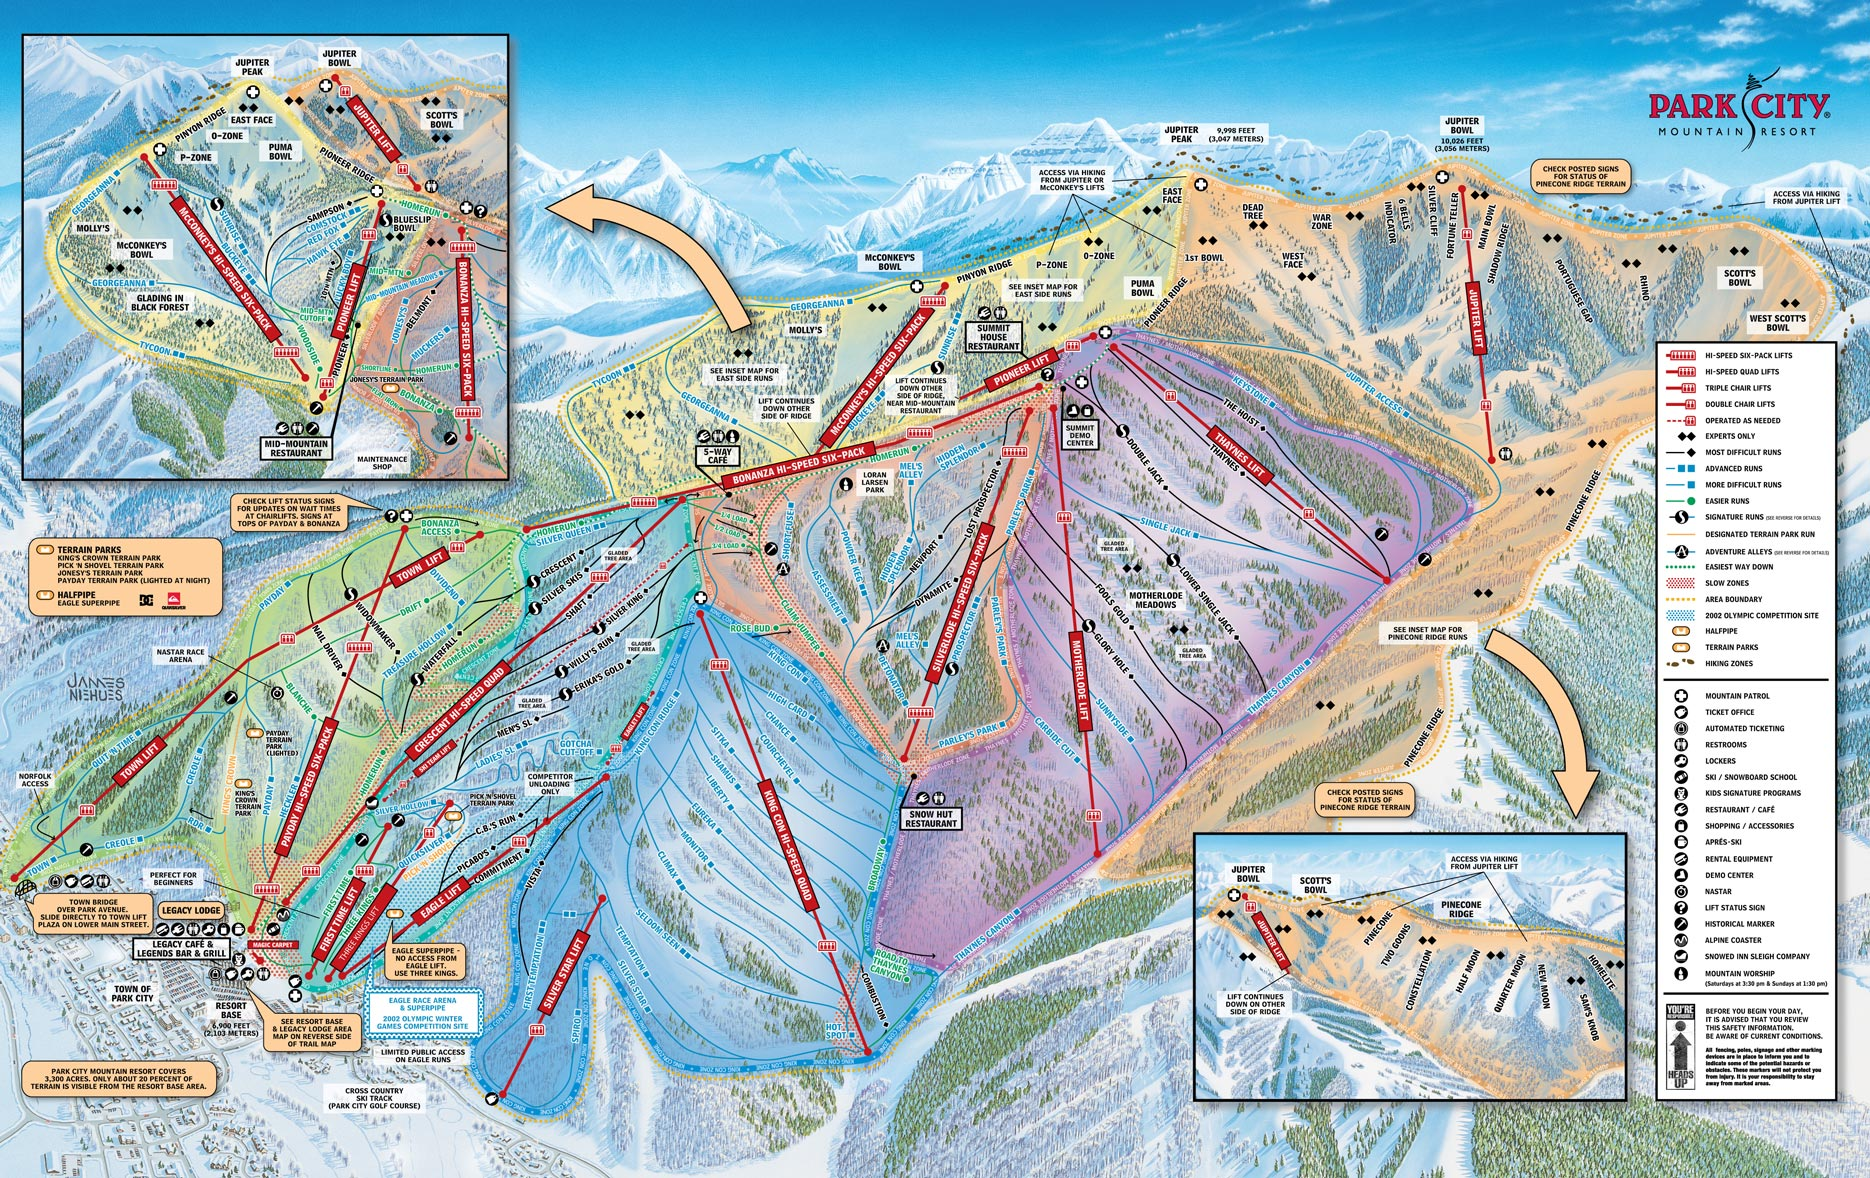 Park City Deer Valley The Canyons Resort Maps Park City Town Map